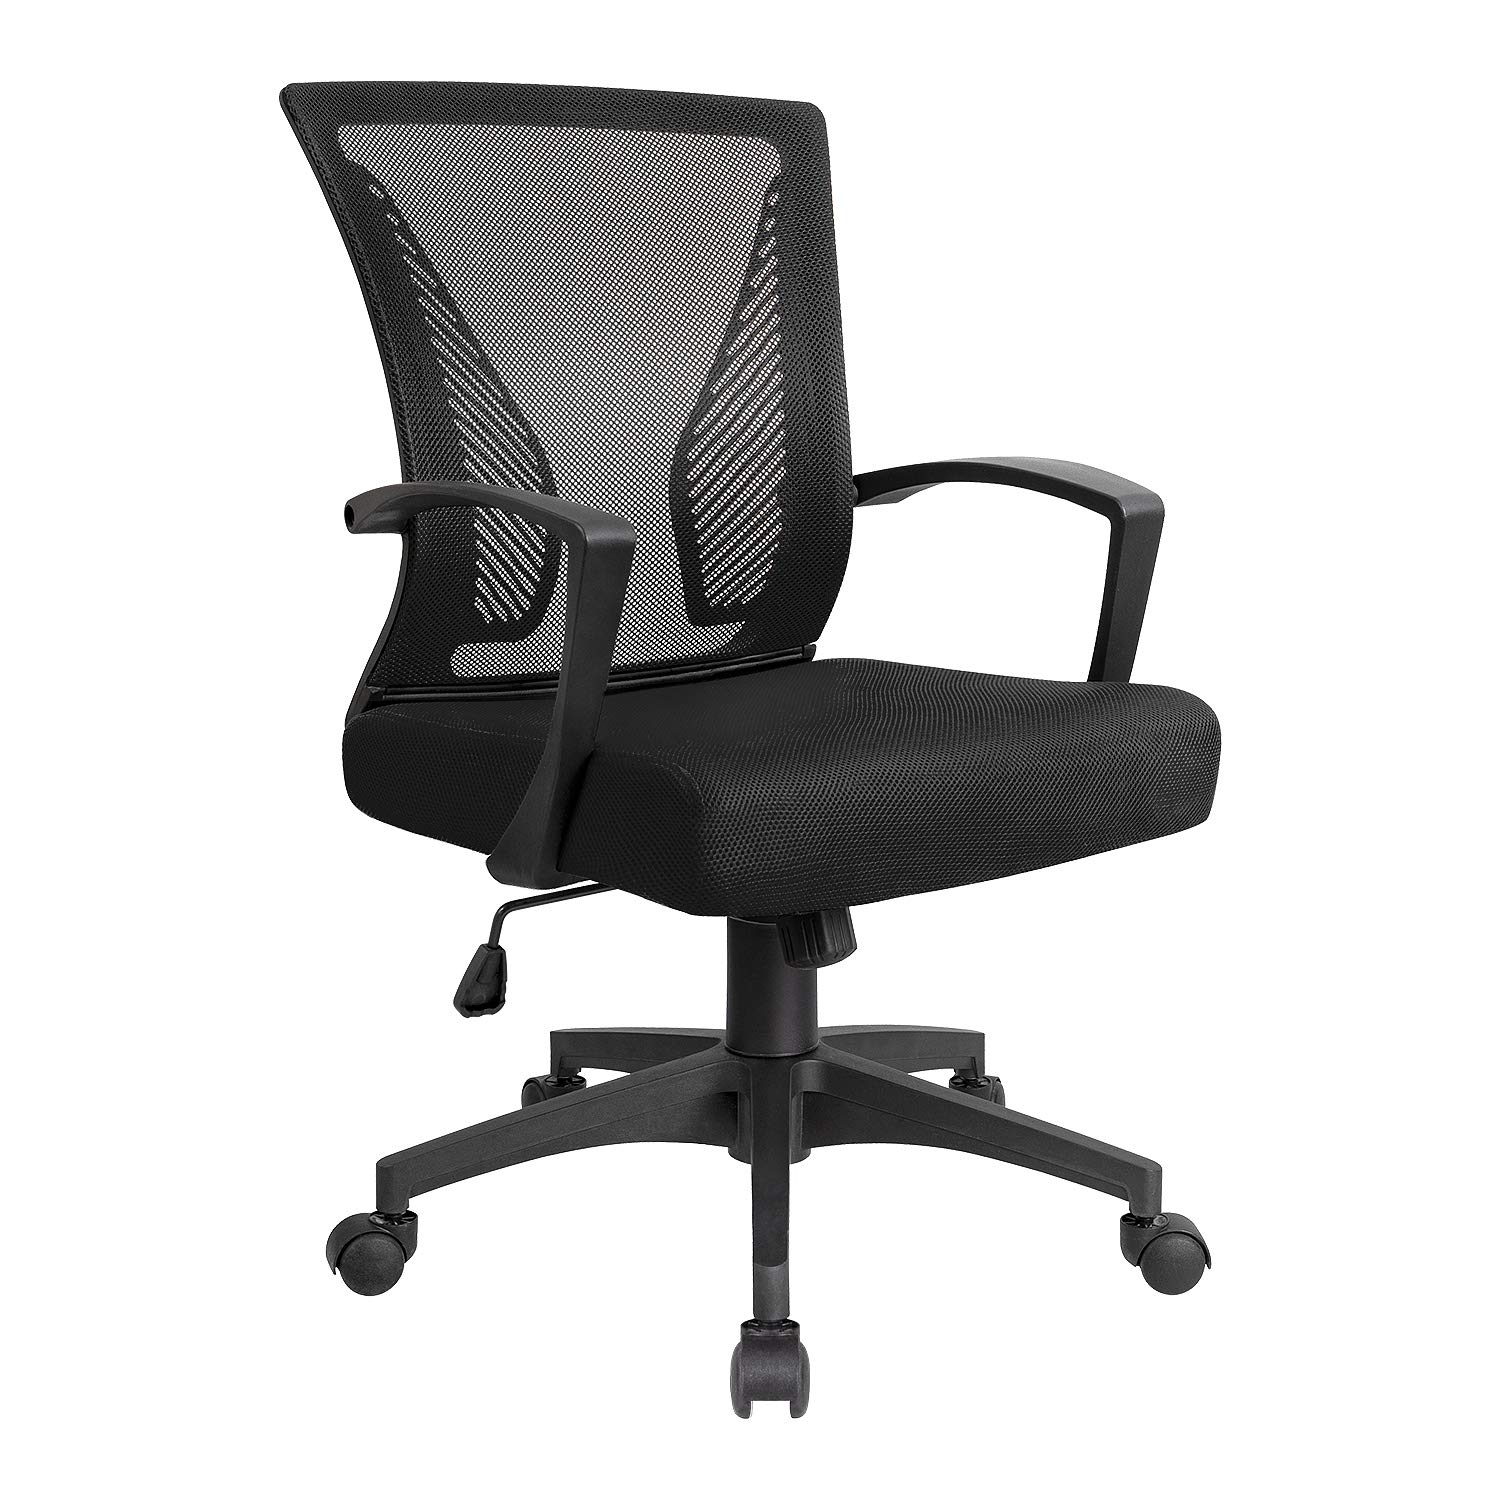 KaiMeng Mid Back Office Chair Ergonomic Computer Chair Desk Chair with Lumbar Support (Black)